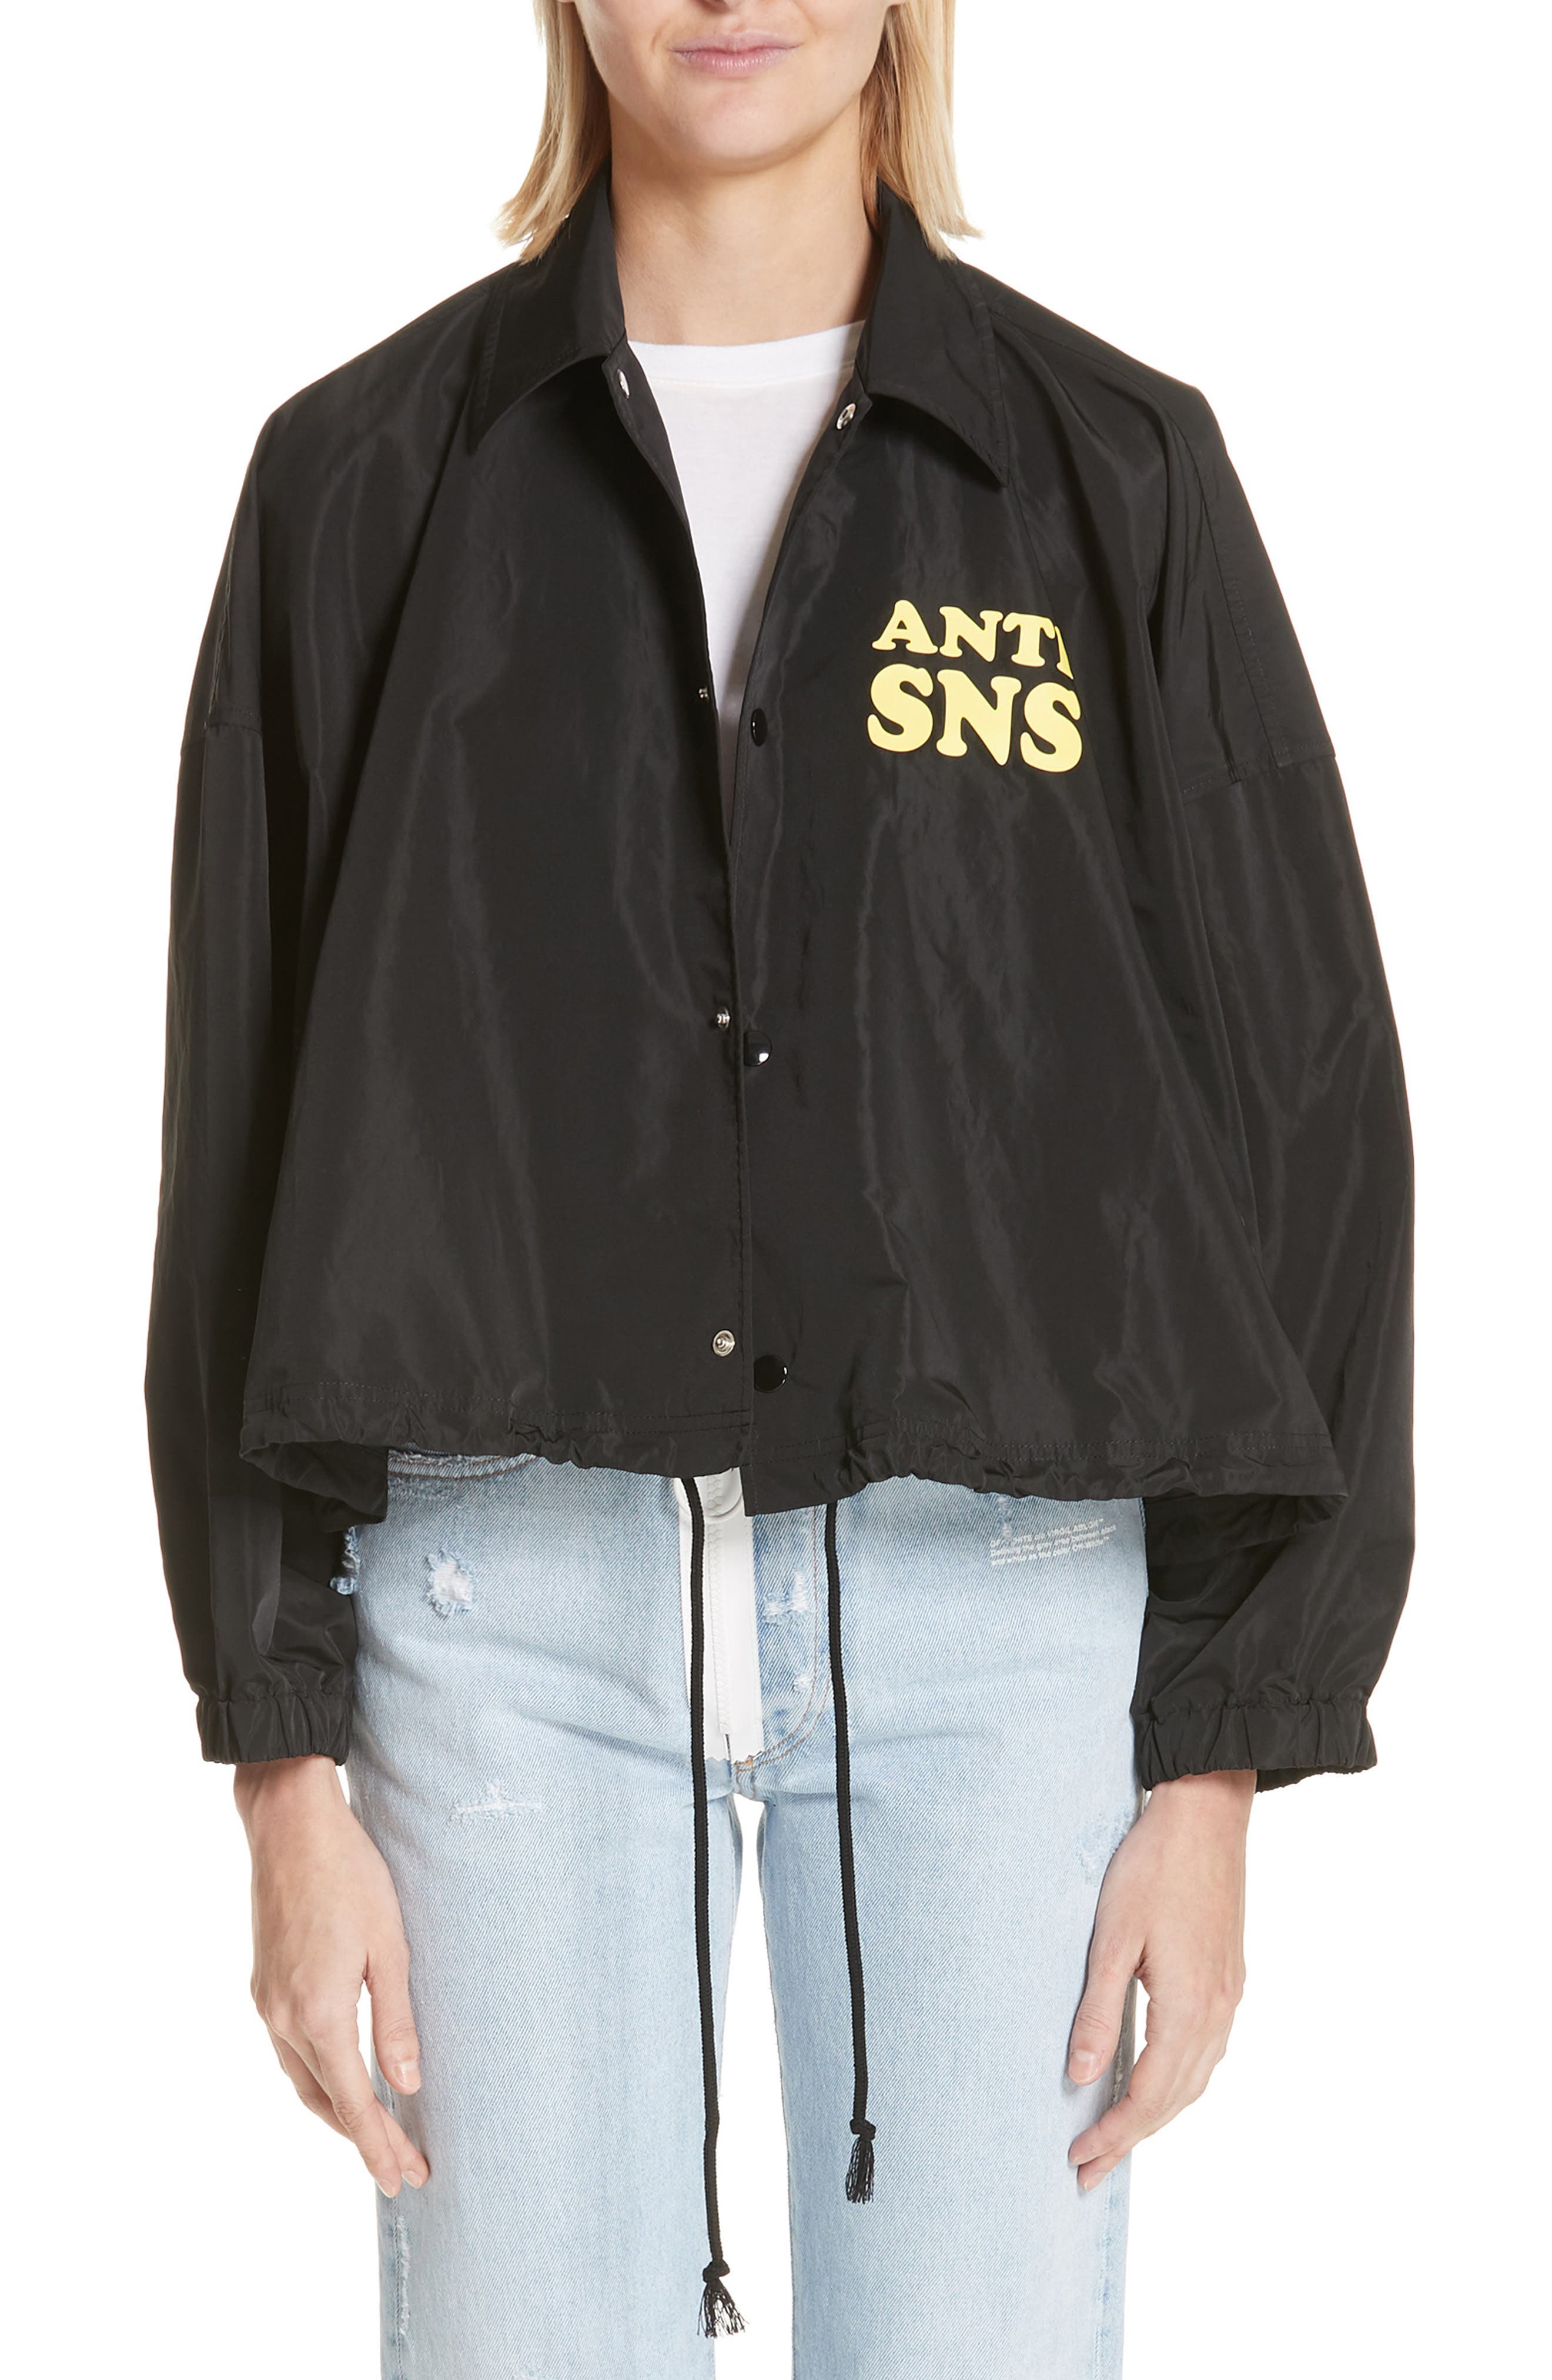 Anti SNS Jacket,                             Main thumbnail 1, color,                             001